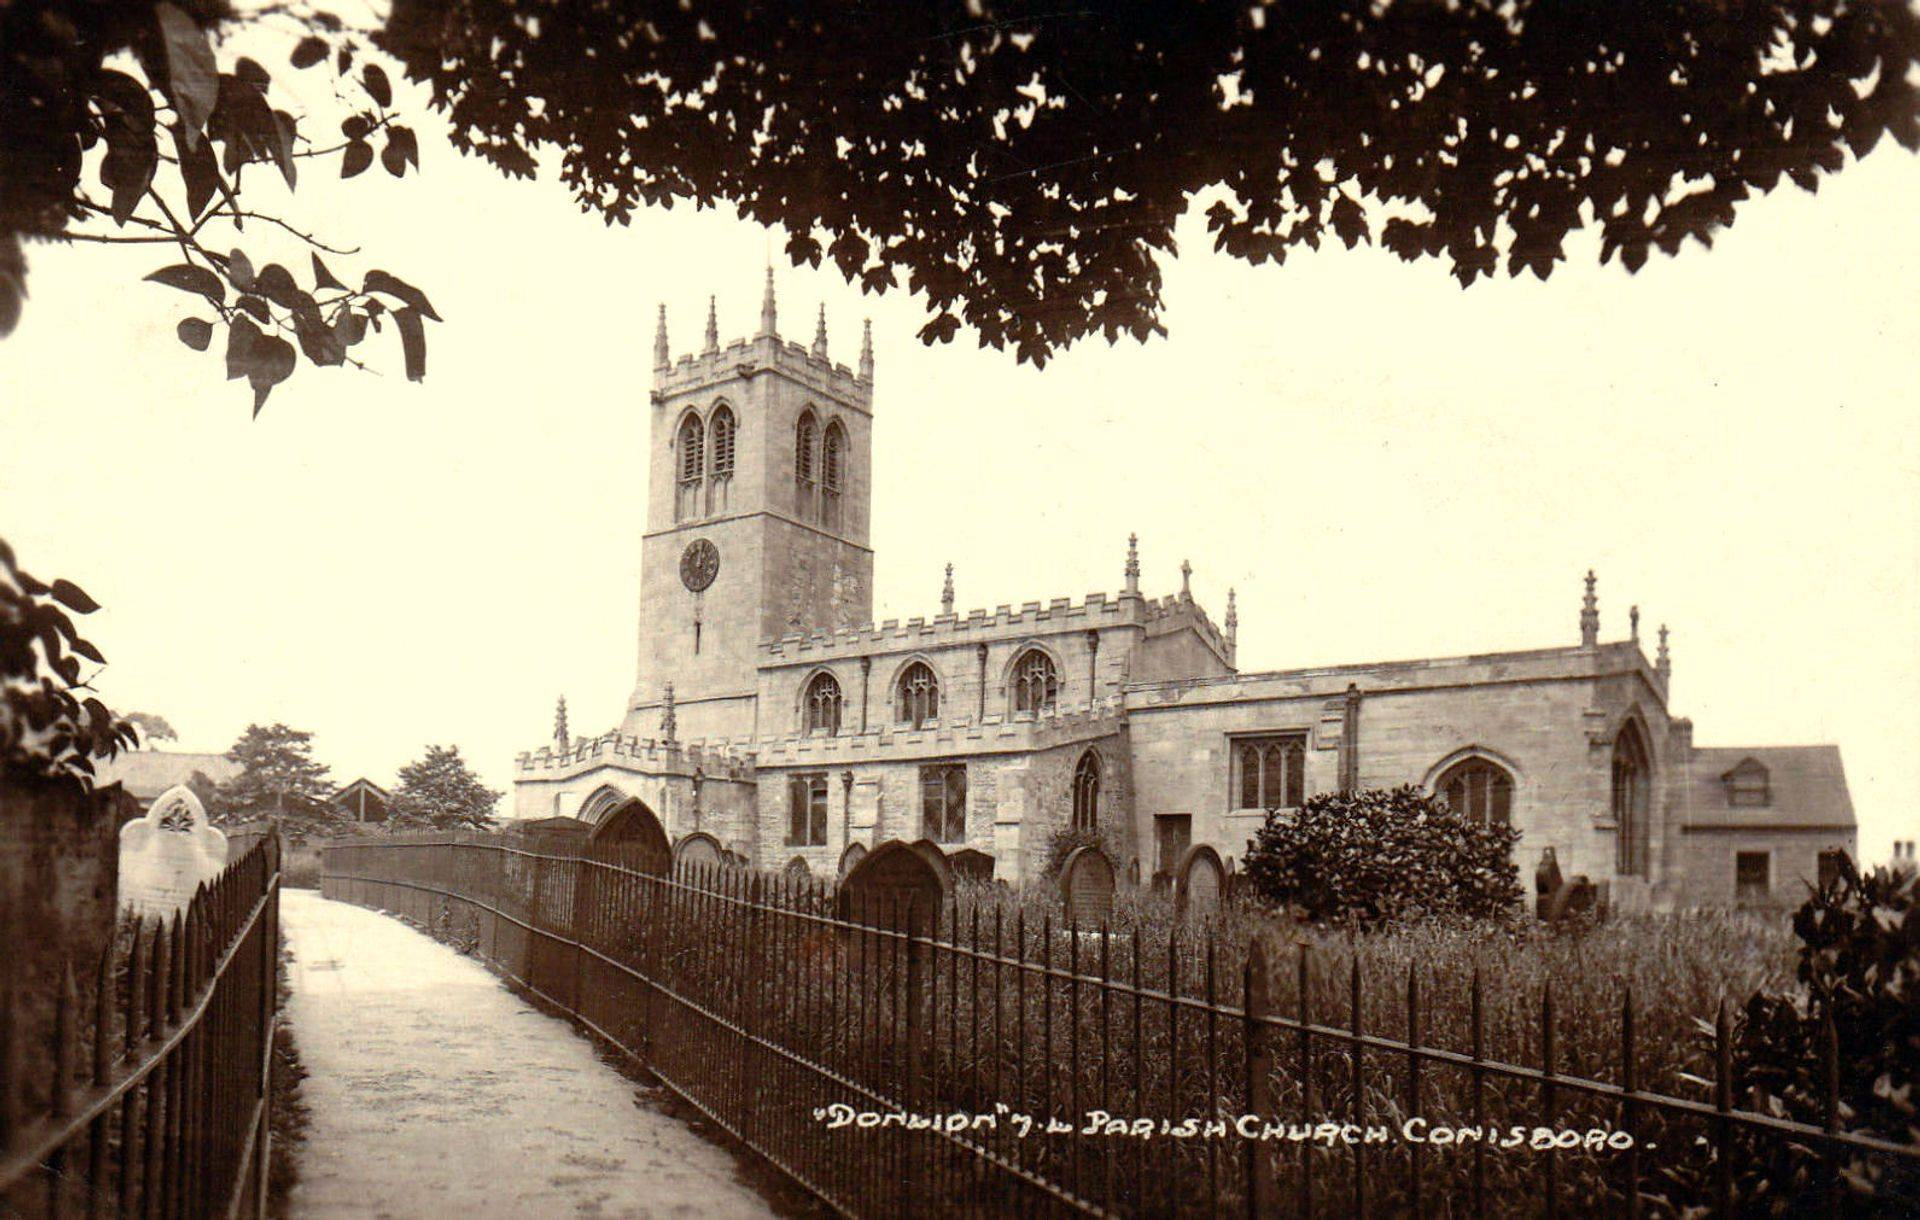 St Peters Church Conisbrough